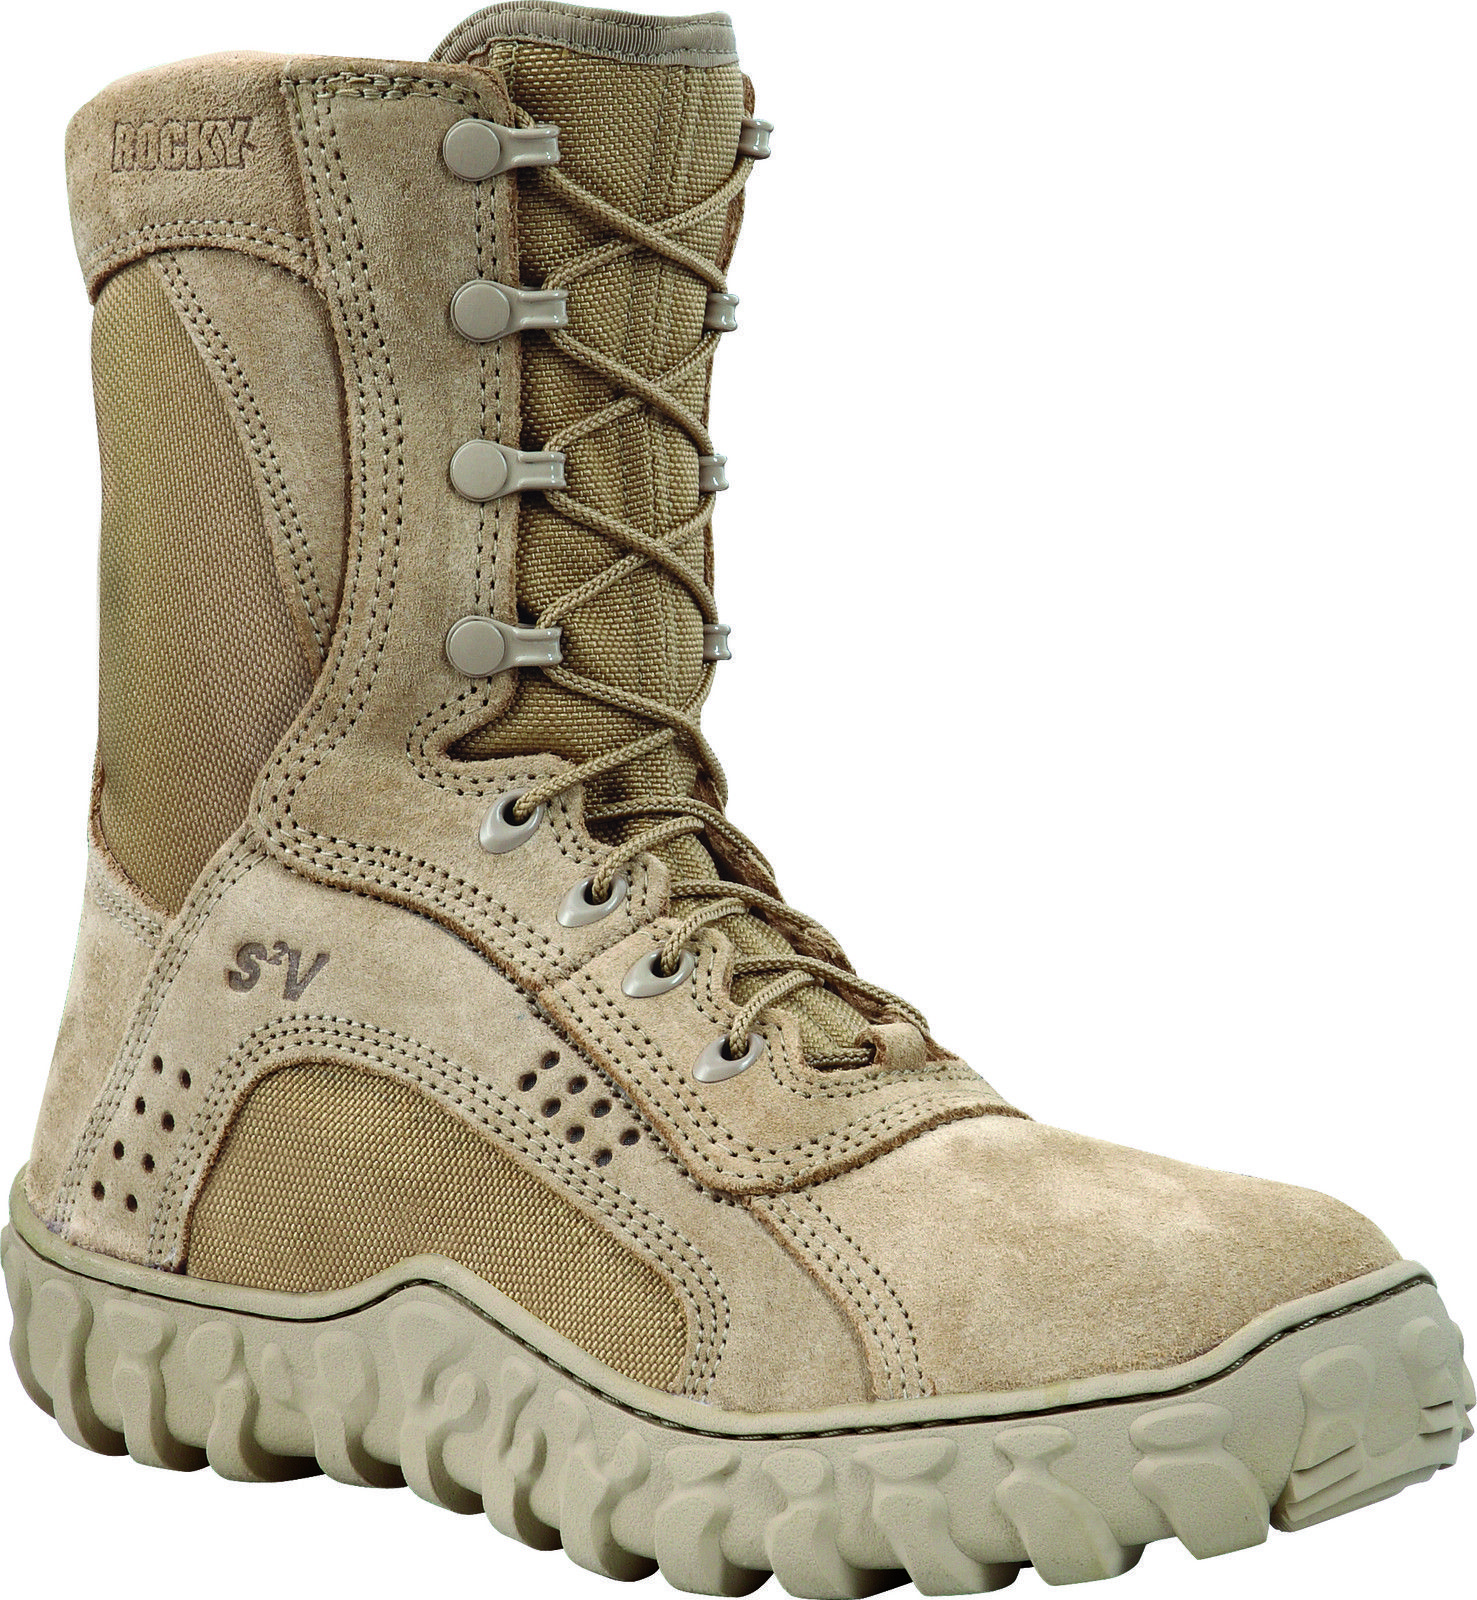 Rocky S2V Vented Military Duty Boot (0000101) in 2019 | Duty